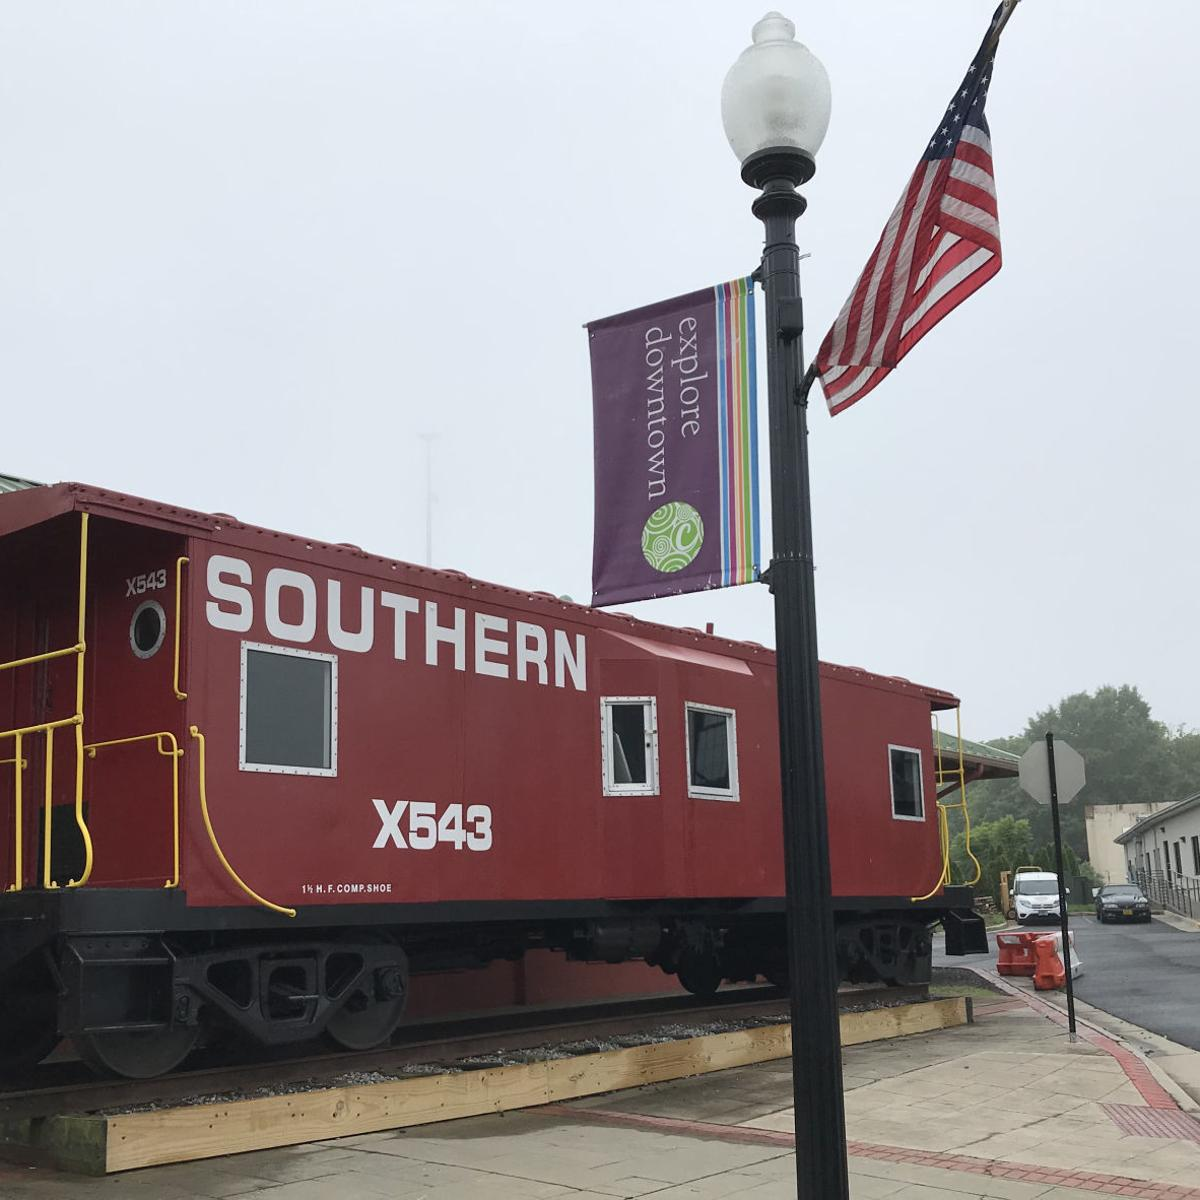 All aboard: Culpeper caboose on track for upgrade